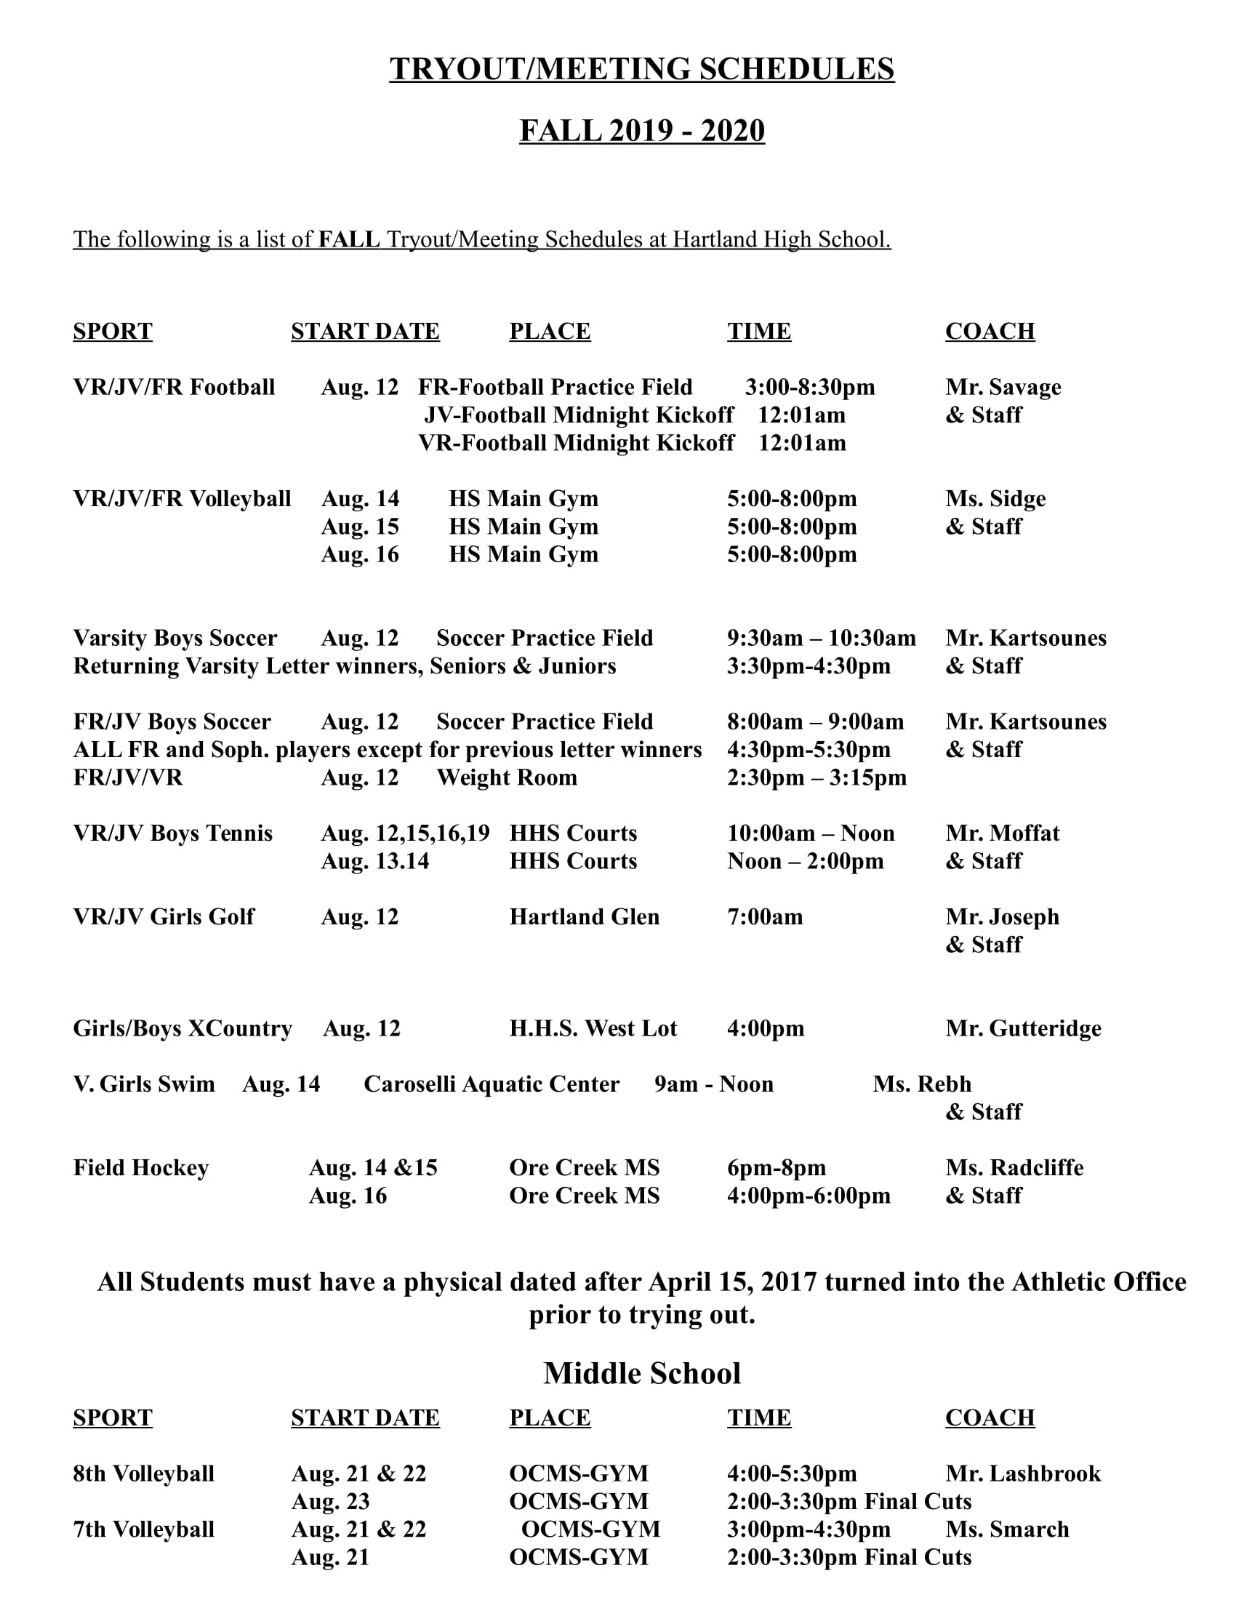 Fall 2019-2020 Tryout Information